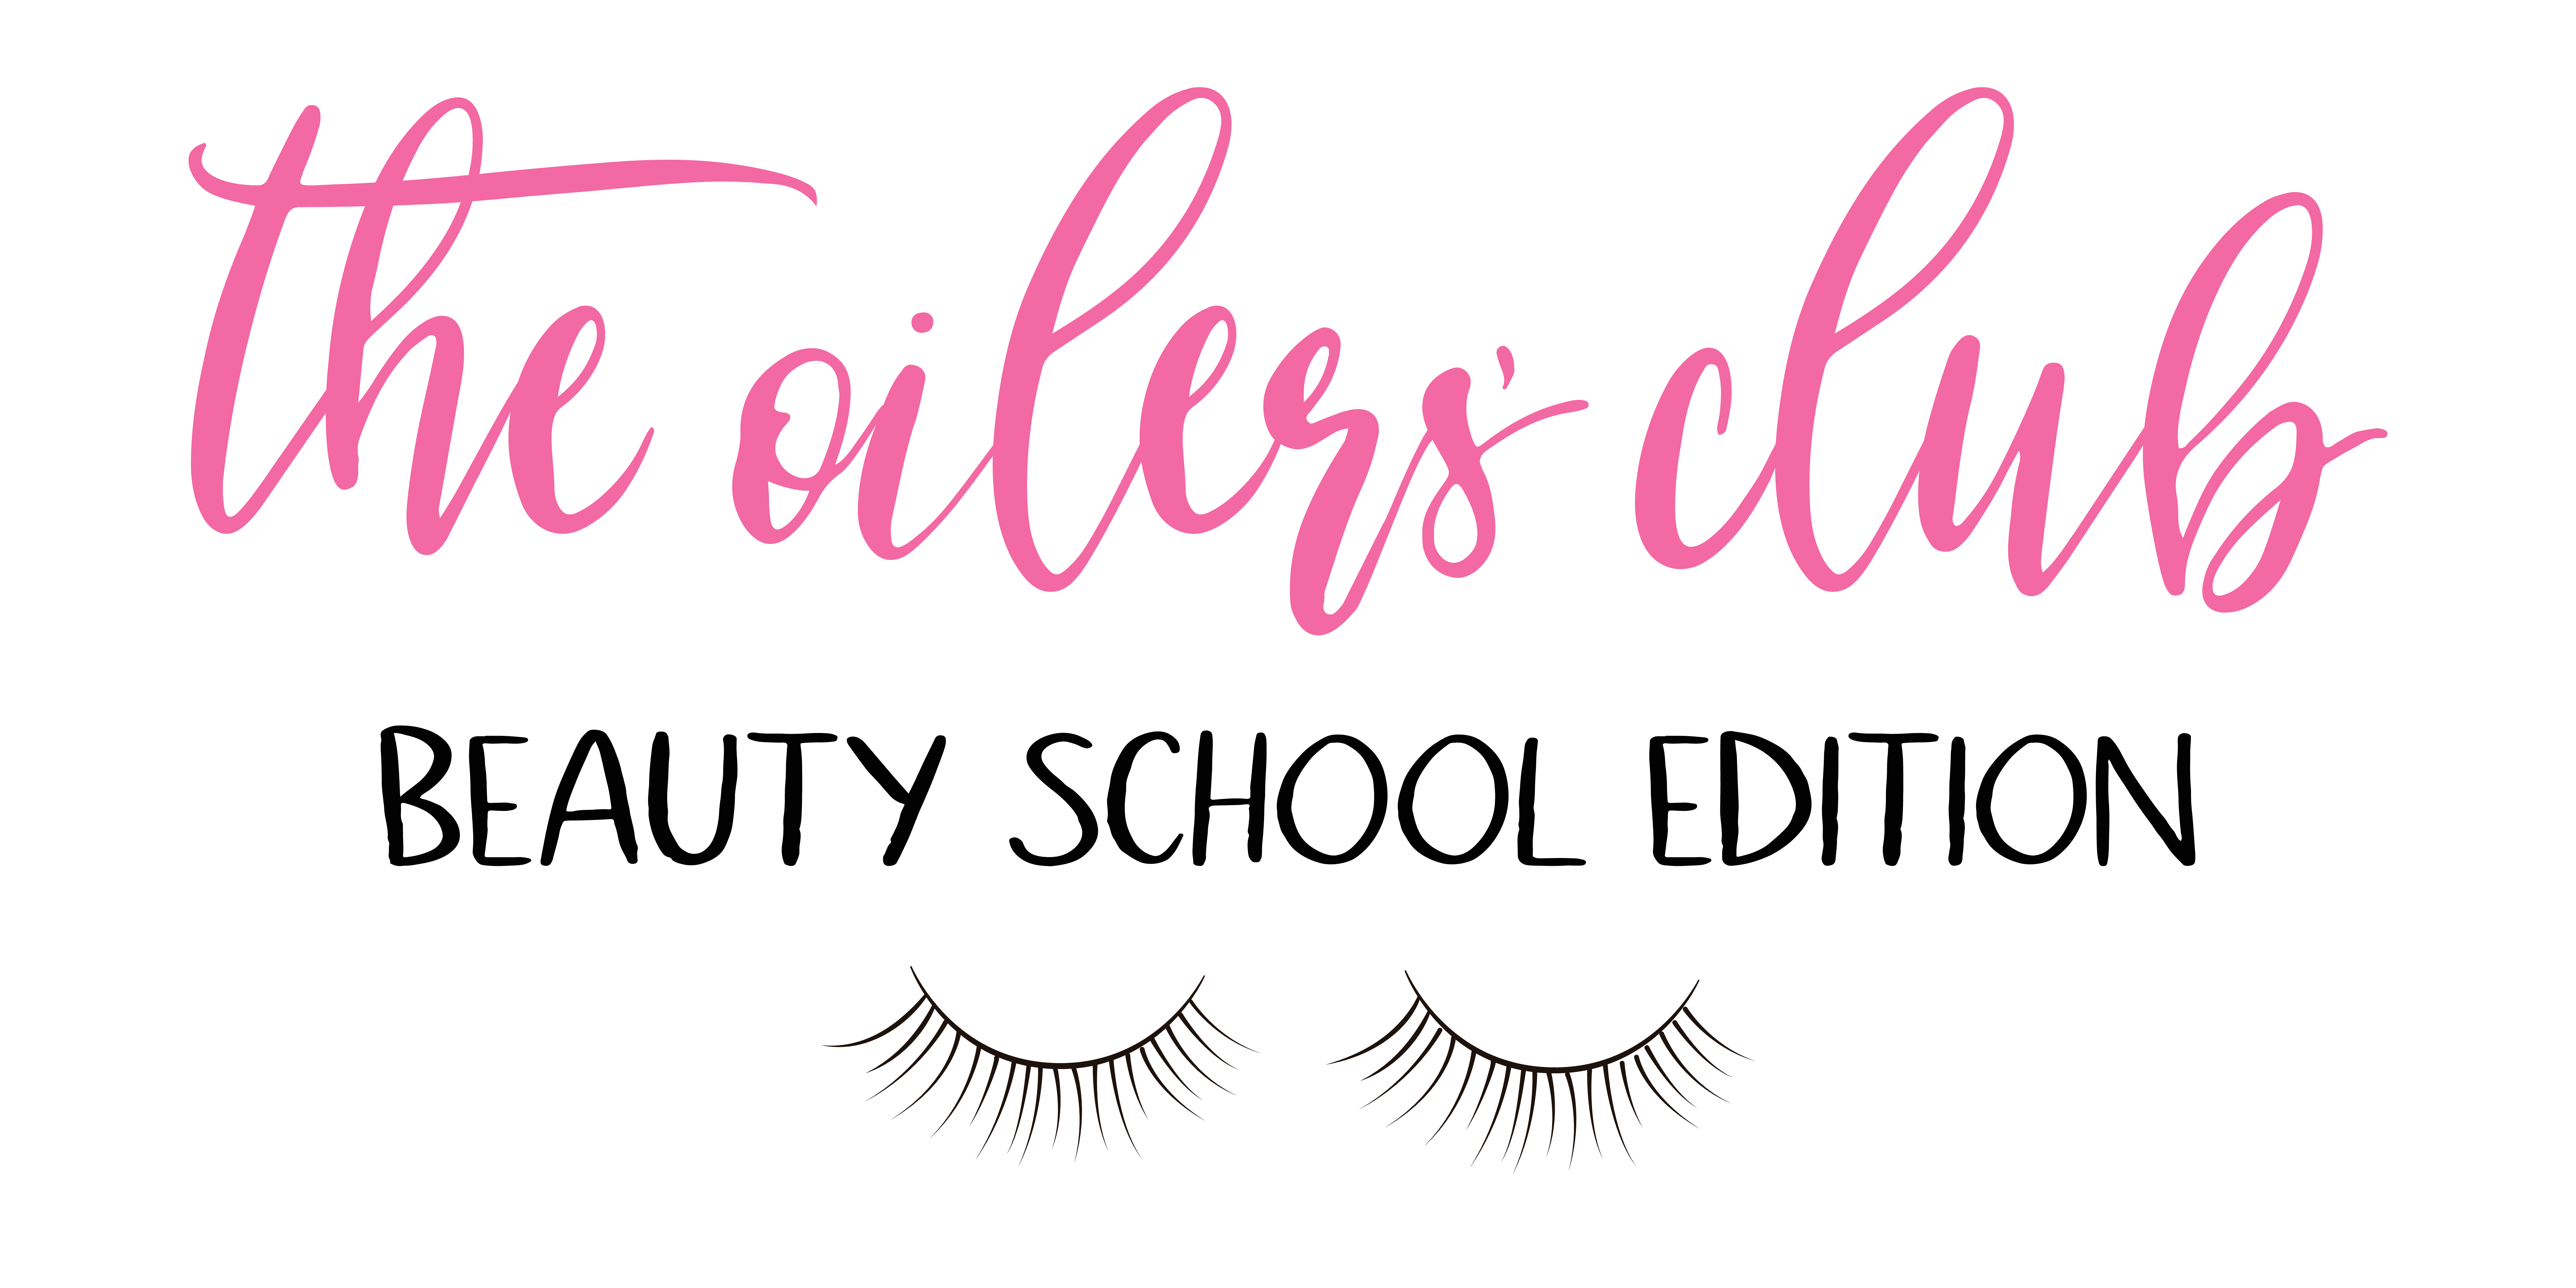 The Oilers' Club - Beauty School Edition